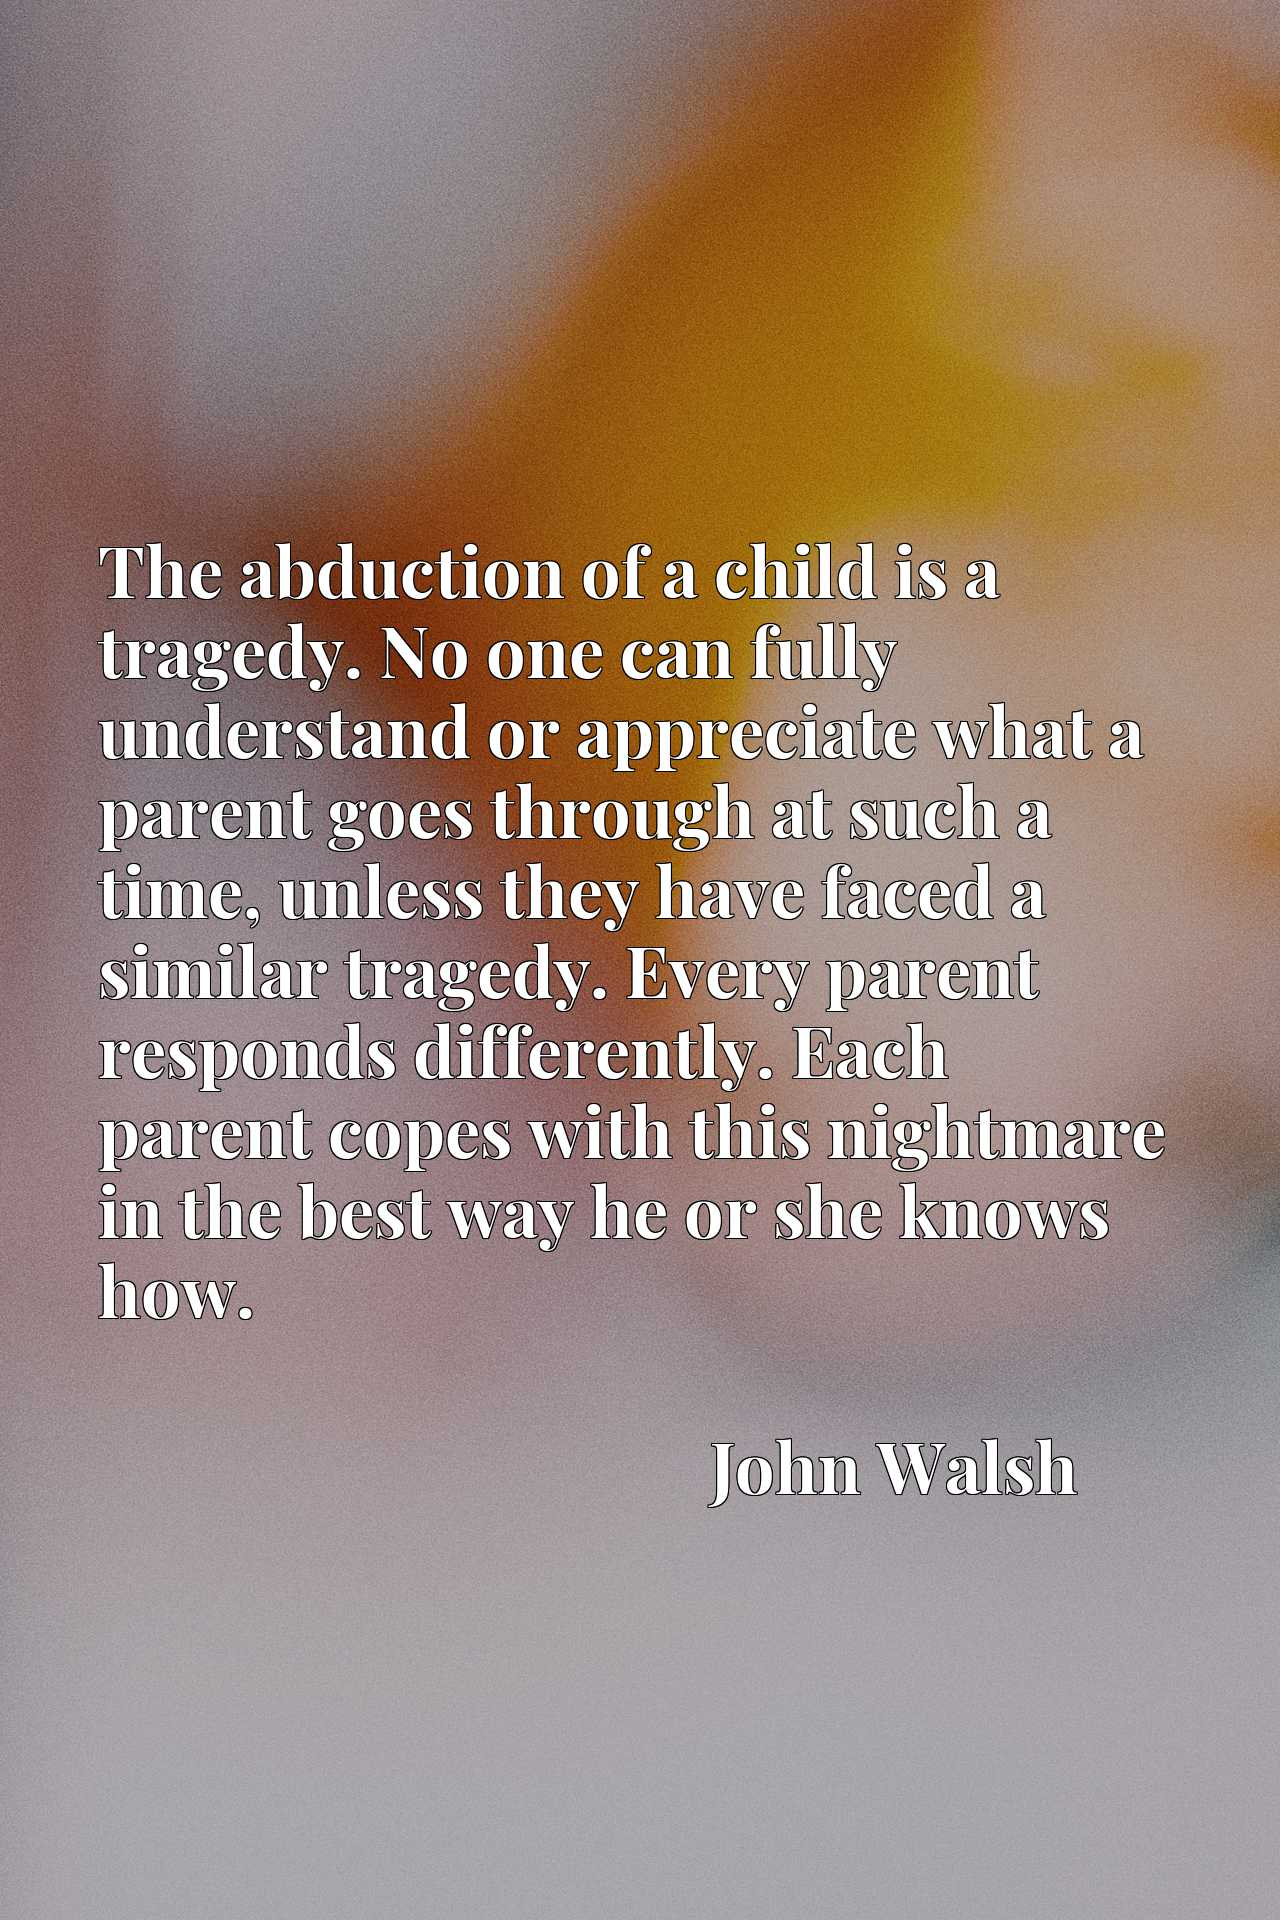 The abduction of a child is a tragedy. No one can fully understand or appreciate what a parent goes through at such a time, unless they have faced a similar tragedy. Every parent responds differently. Each parent copes with this nightmare in the best way he or she knows how.